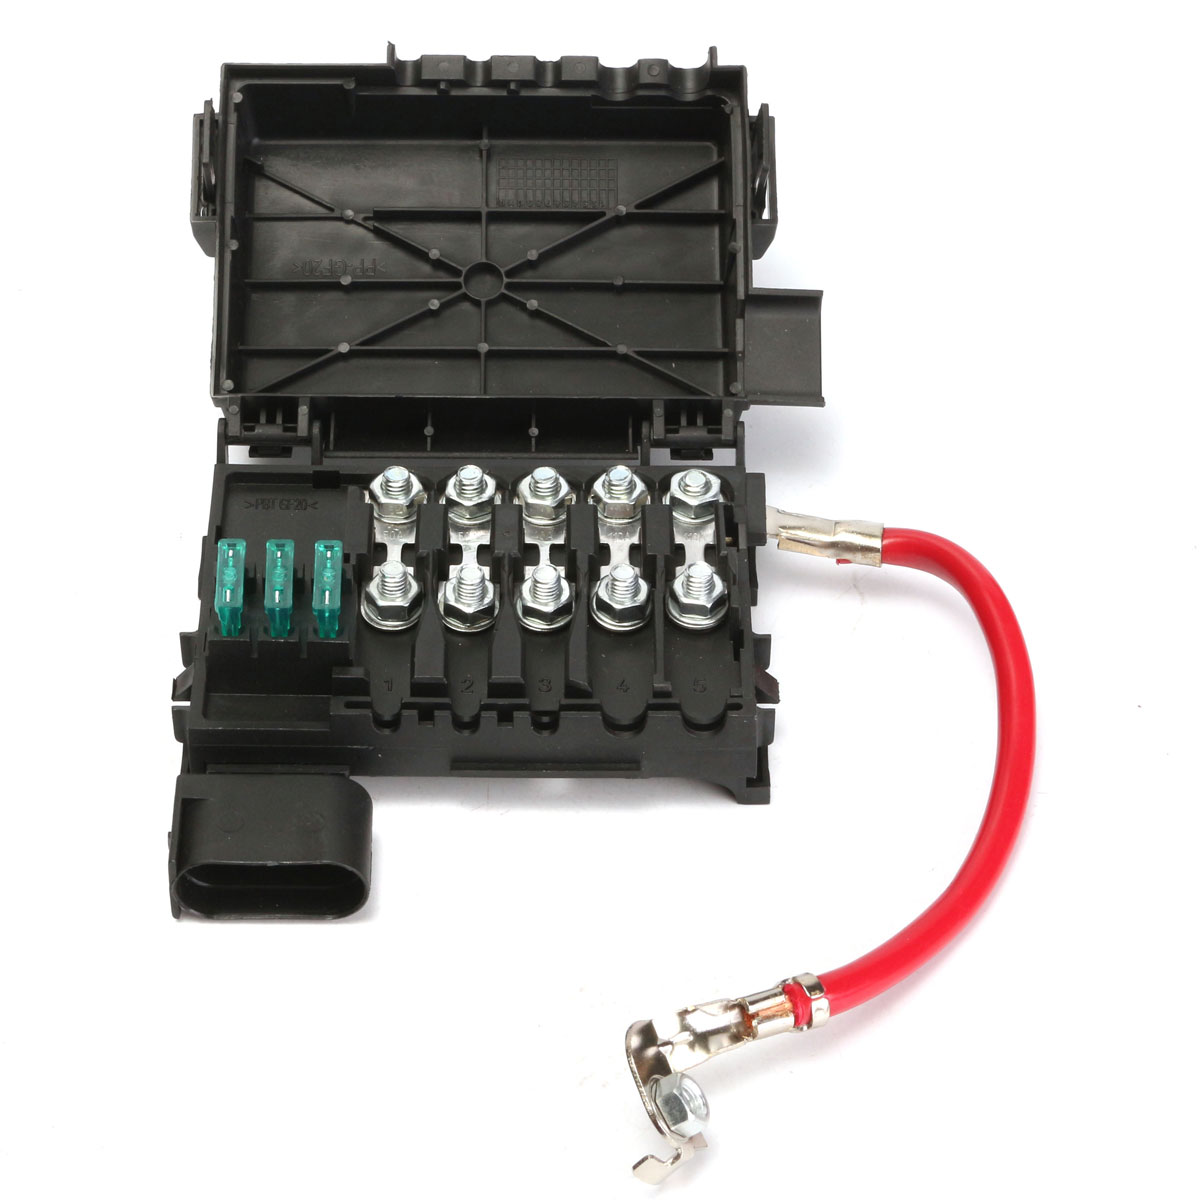 hight resolution of fuse box battery terminal insurance tablets for vw jetta golf mk4 jetta battery fuse box fuse